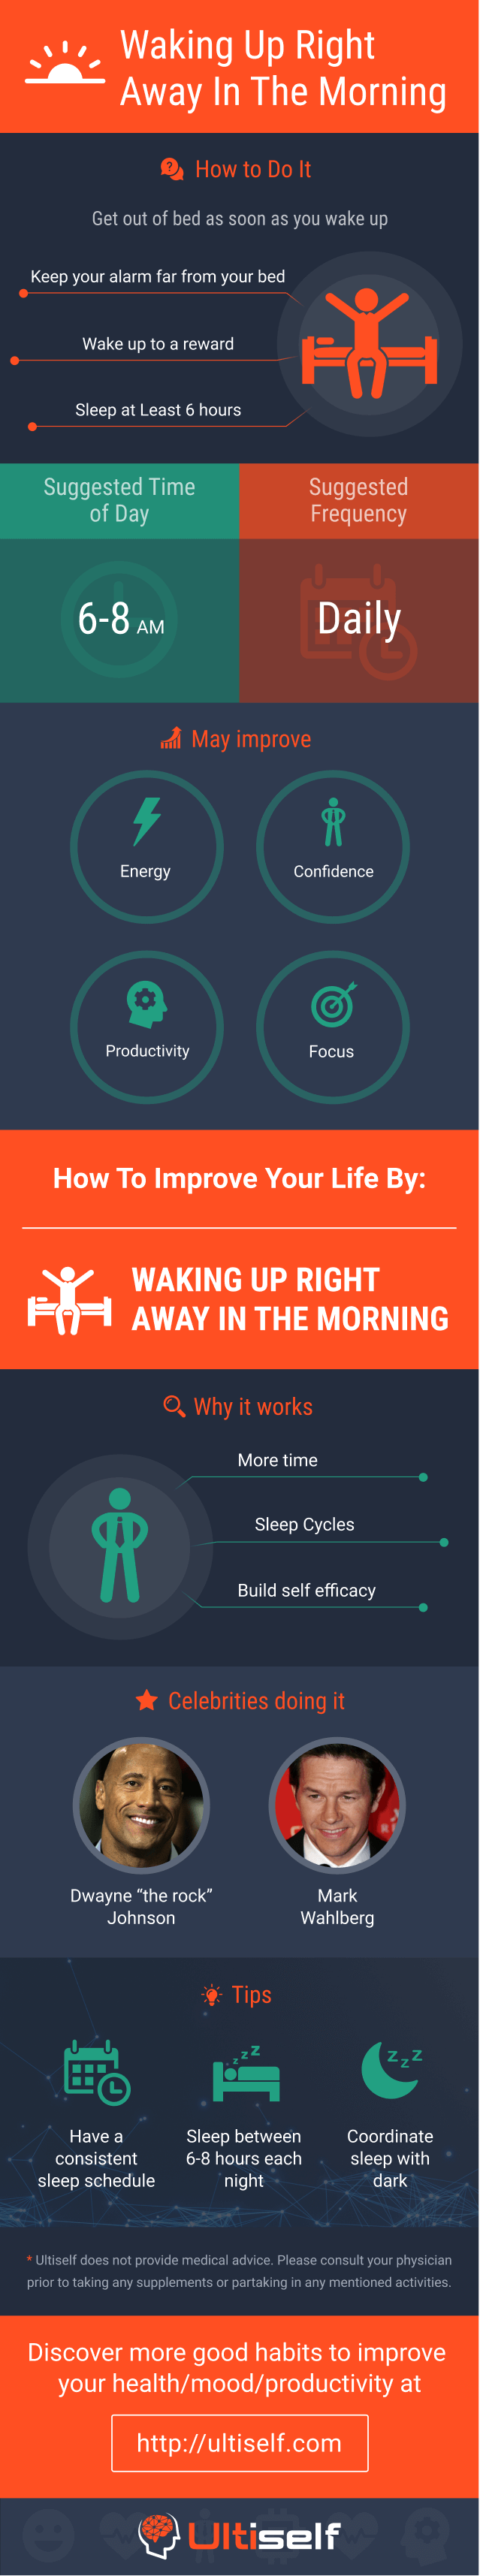 Wake up right away in the morning infographic